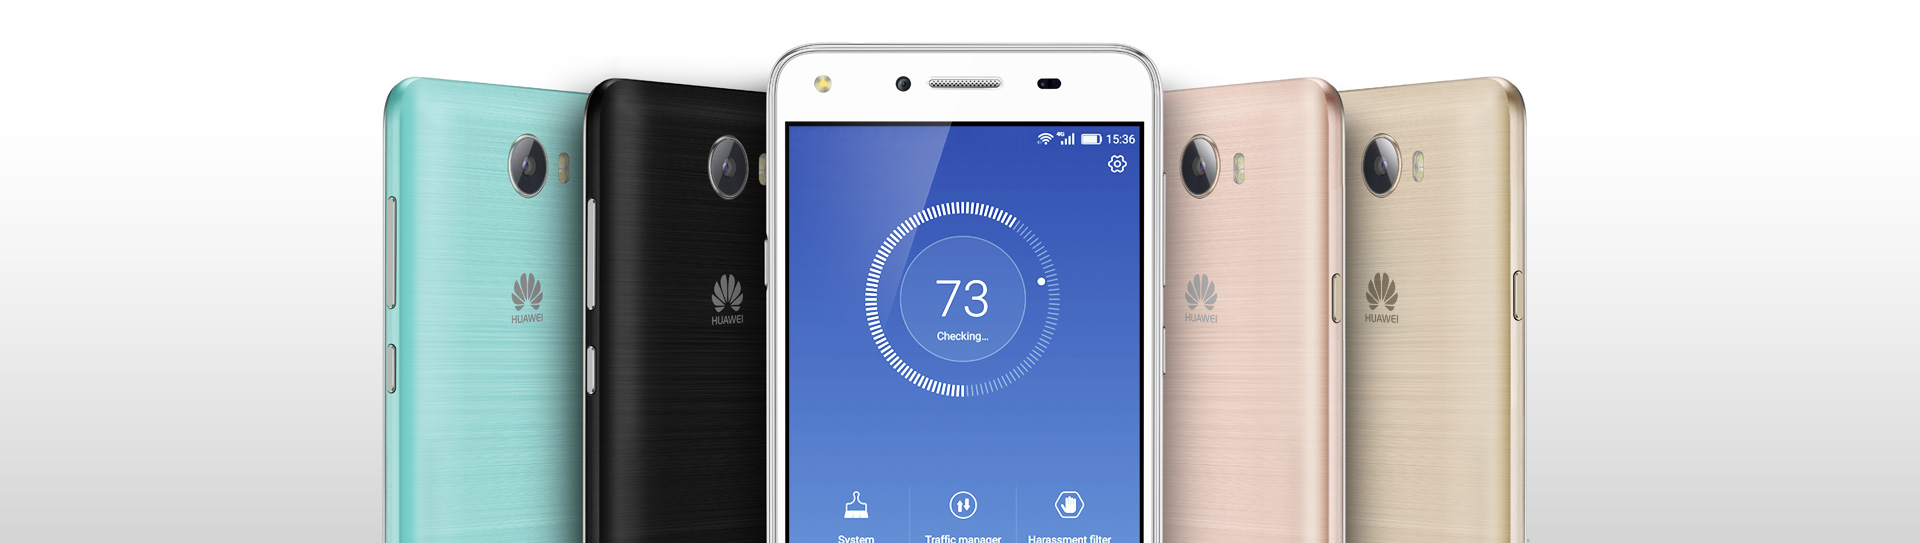 huawei usa phones. the built in phone manager ensures a safer and more fluid user experience.*the product is not available or for sale usa. huawei usa phones u